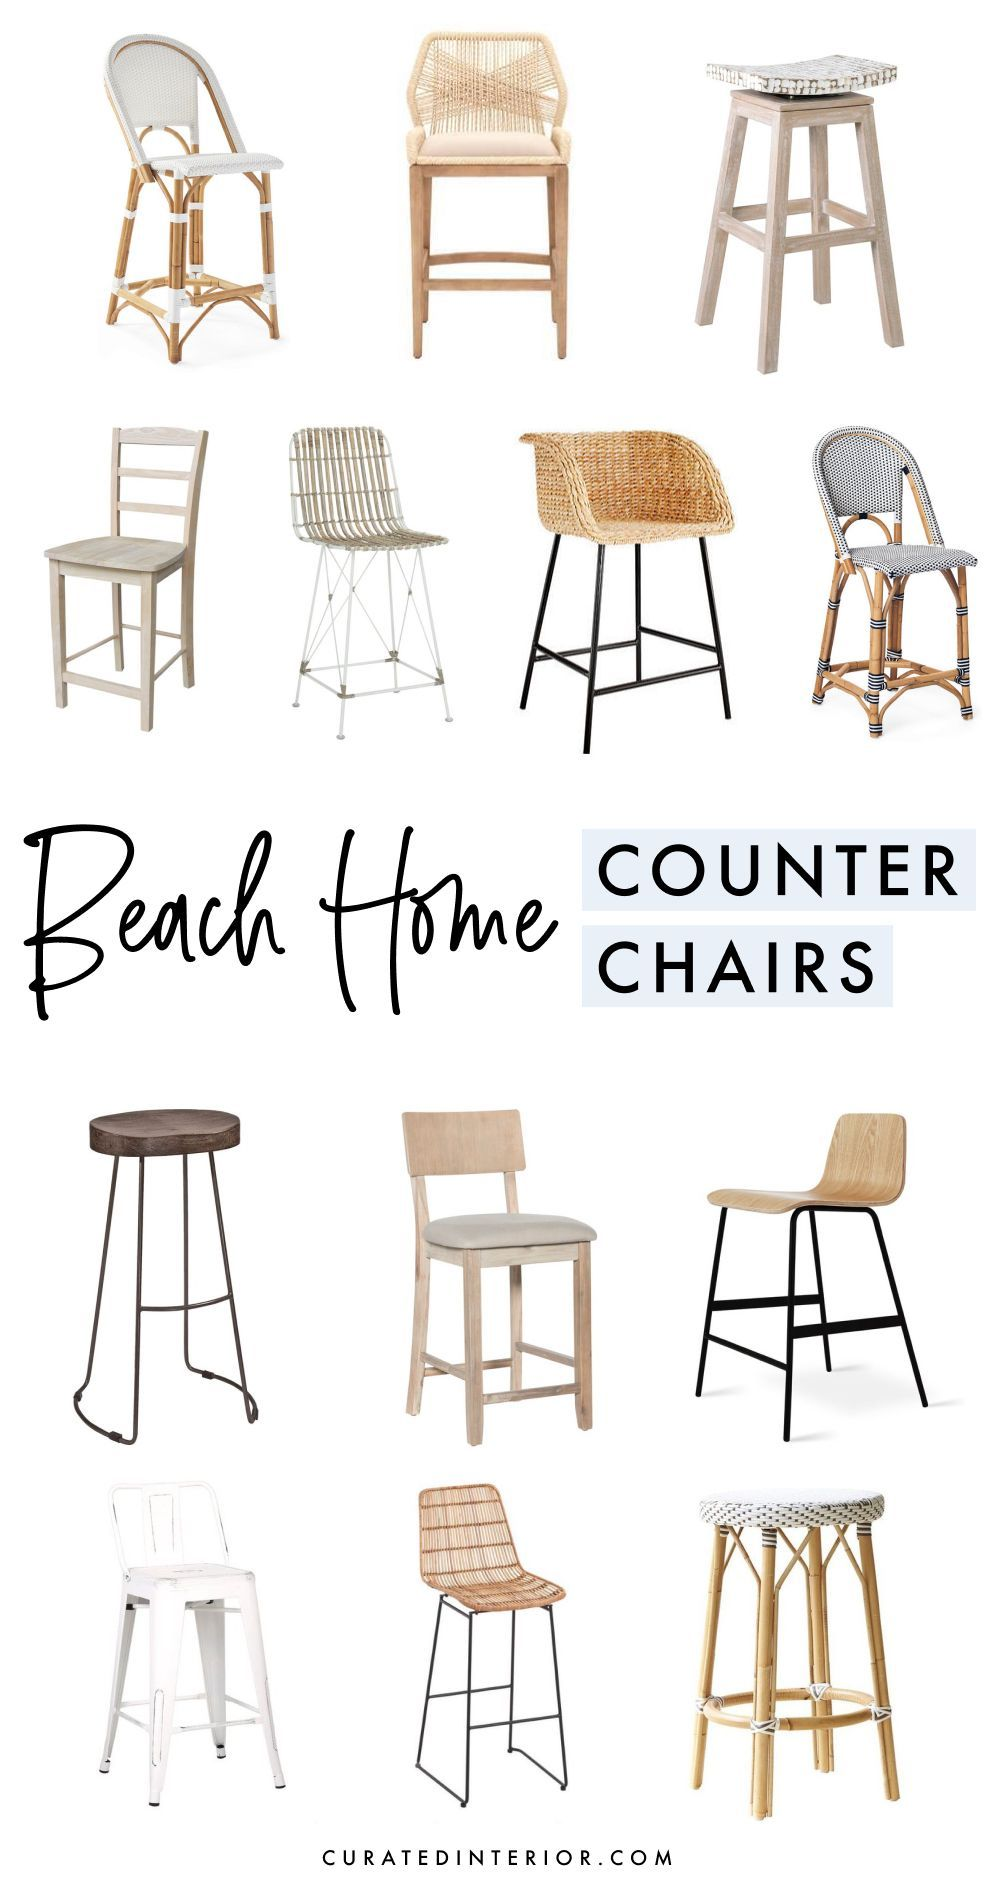 15 Coastal Counter Chairs Bar Stools For Beach Homes Coastal Style Bedroom Coastal Style Bathroom Beach House Decor